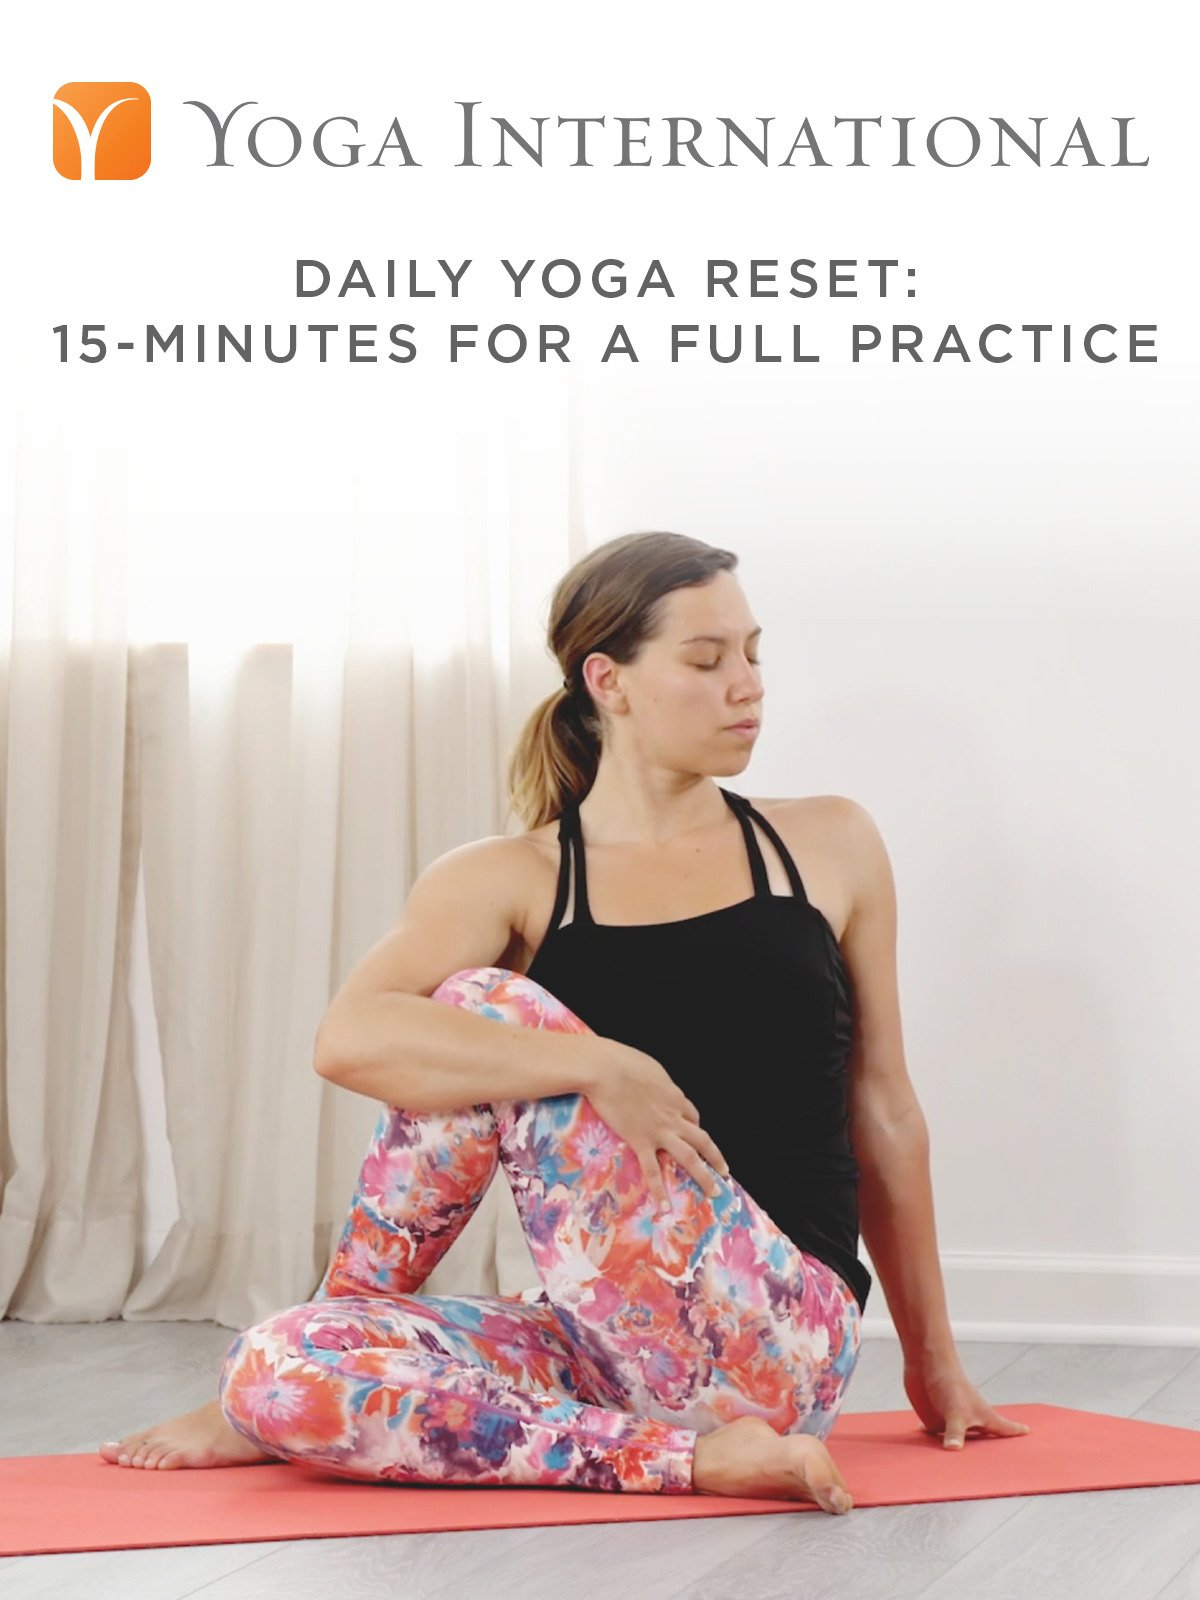 Daily Yoga Reset: 15-Minutes for a Full Practice